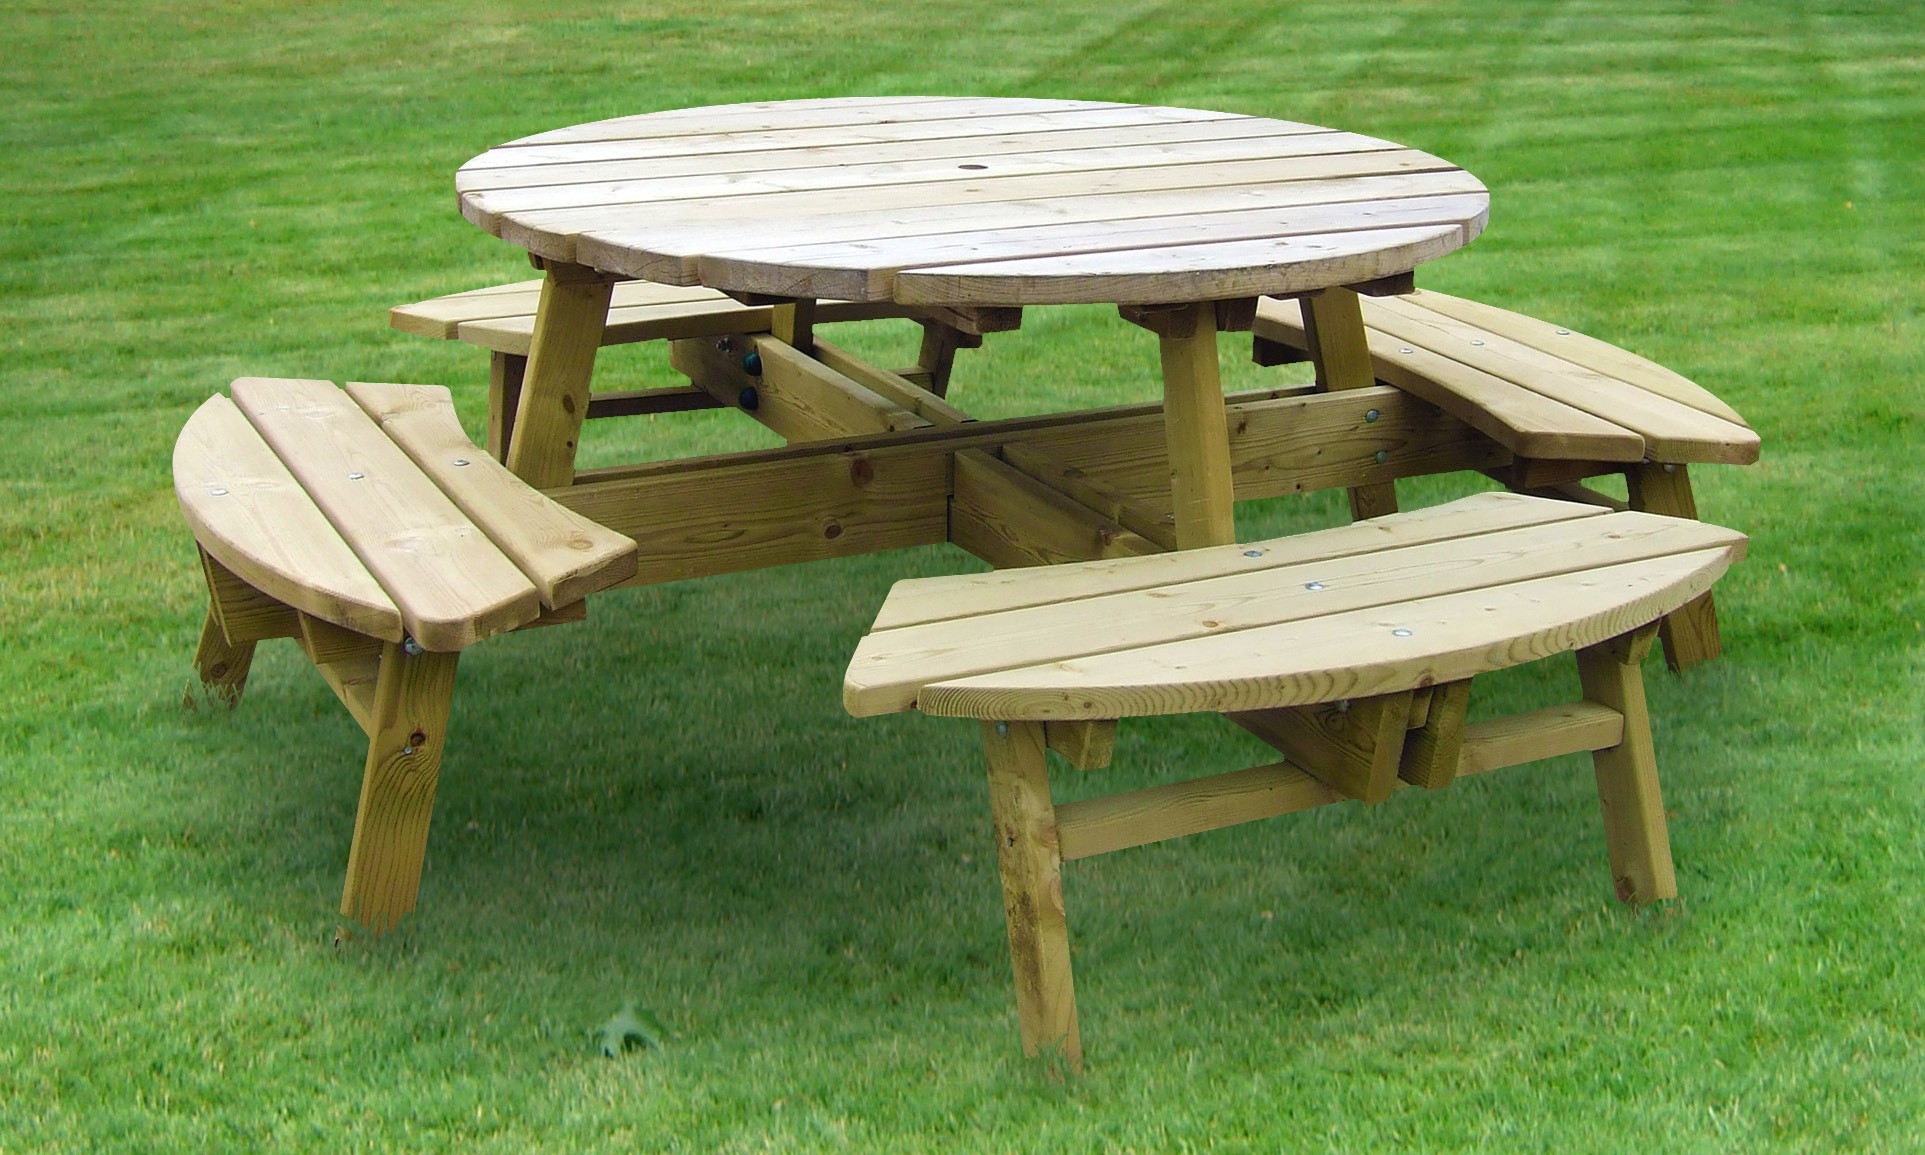 rose round picnic table 8 seater hillsborough fencing co ltd. Black Bedroom Furniture Sets. Home Design Ideas